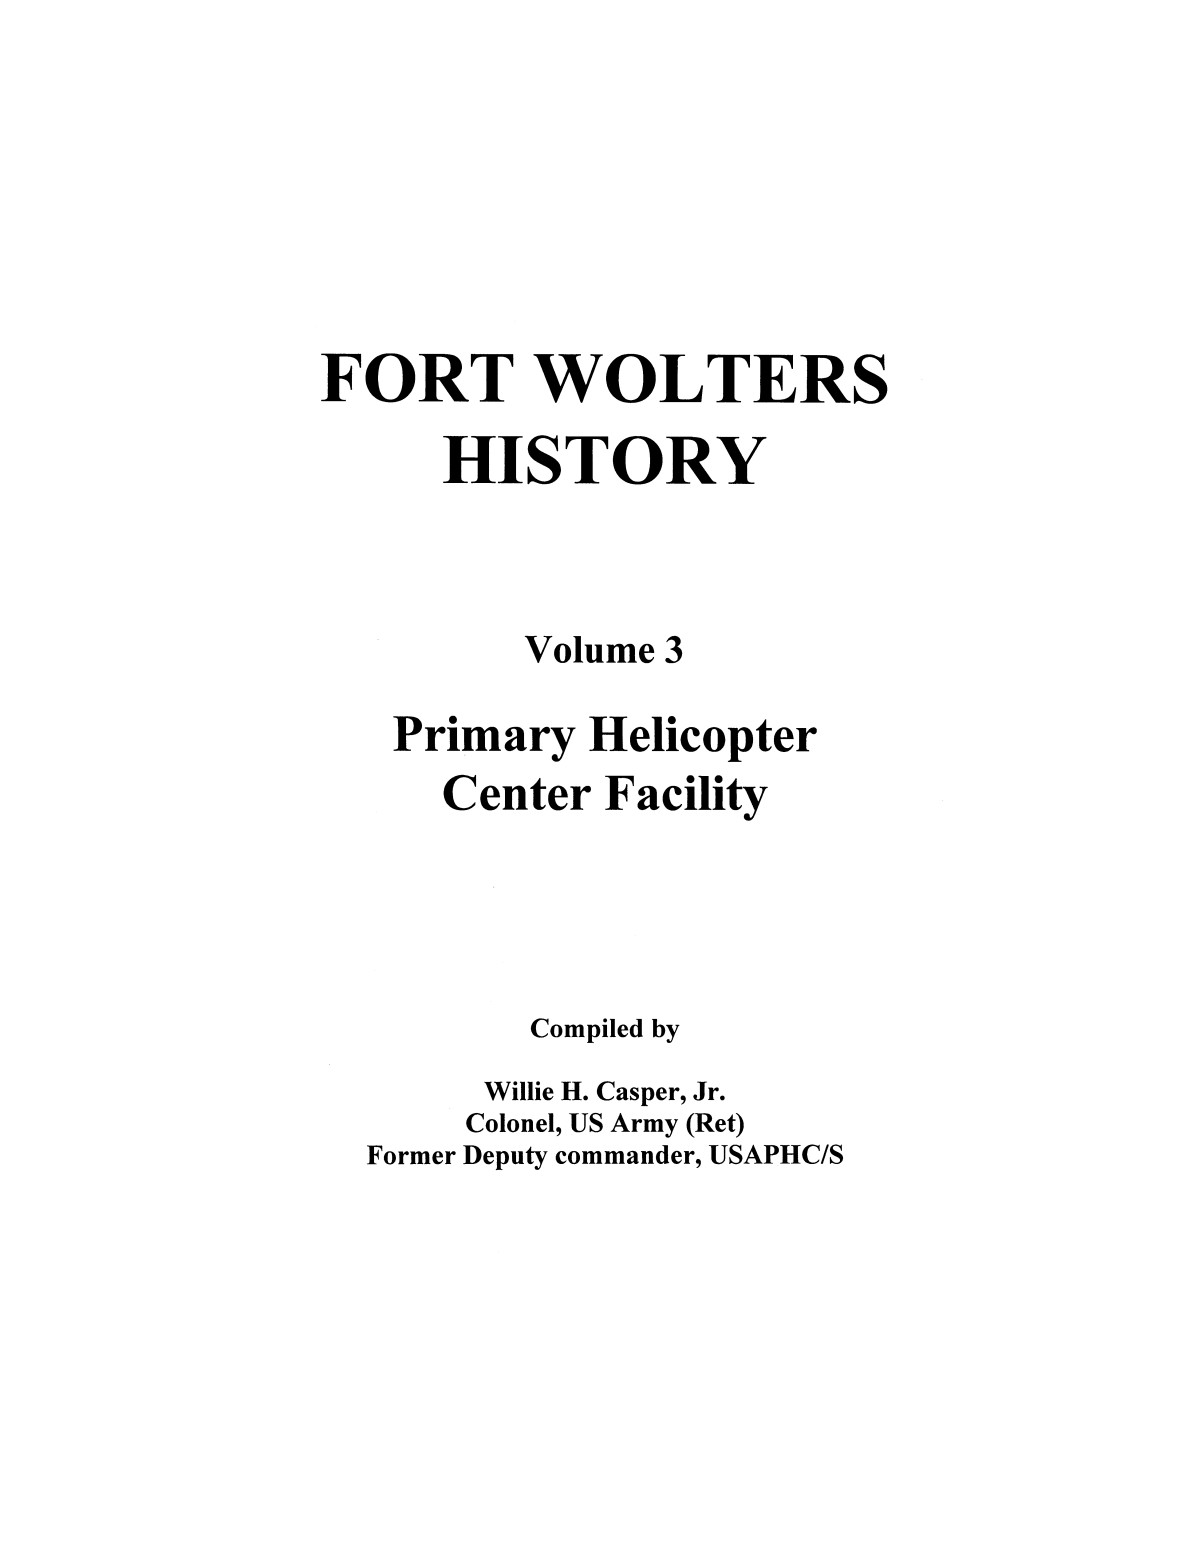 Pictorial History of Fort Wolters, Volume 3: Primary Helicopter Center Facility                                                                                                      [Sequence #]: 1 of 294